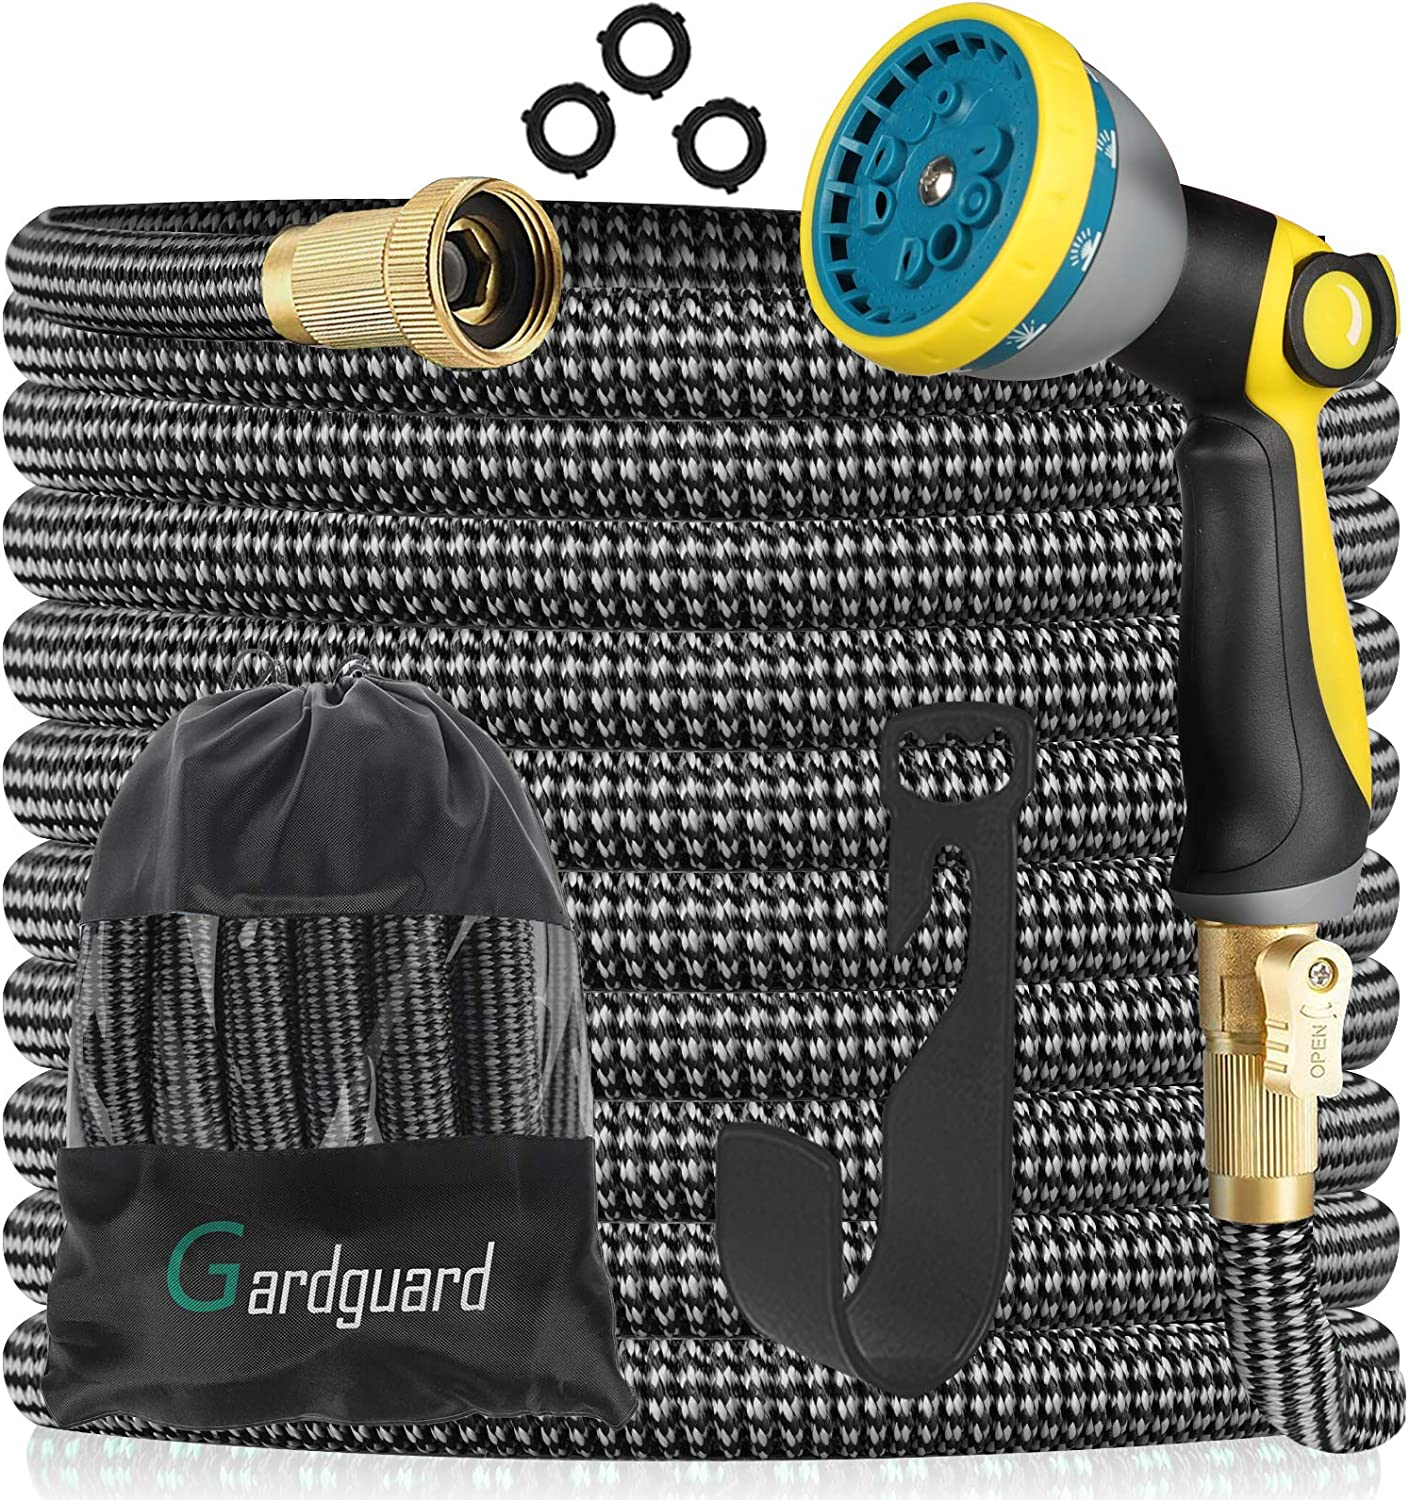 Gardguard 50FT Expandable Garden Hose with 10 Function High Pressure Nozzle, Water Hose with Durable 3-Layers Latex and 3/4 Solid Fittings, Lightweight Garden Hose for Washing and Watering